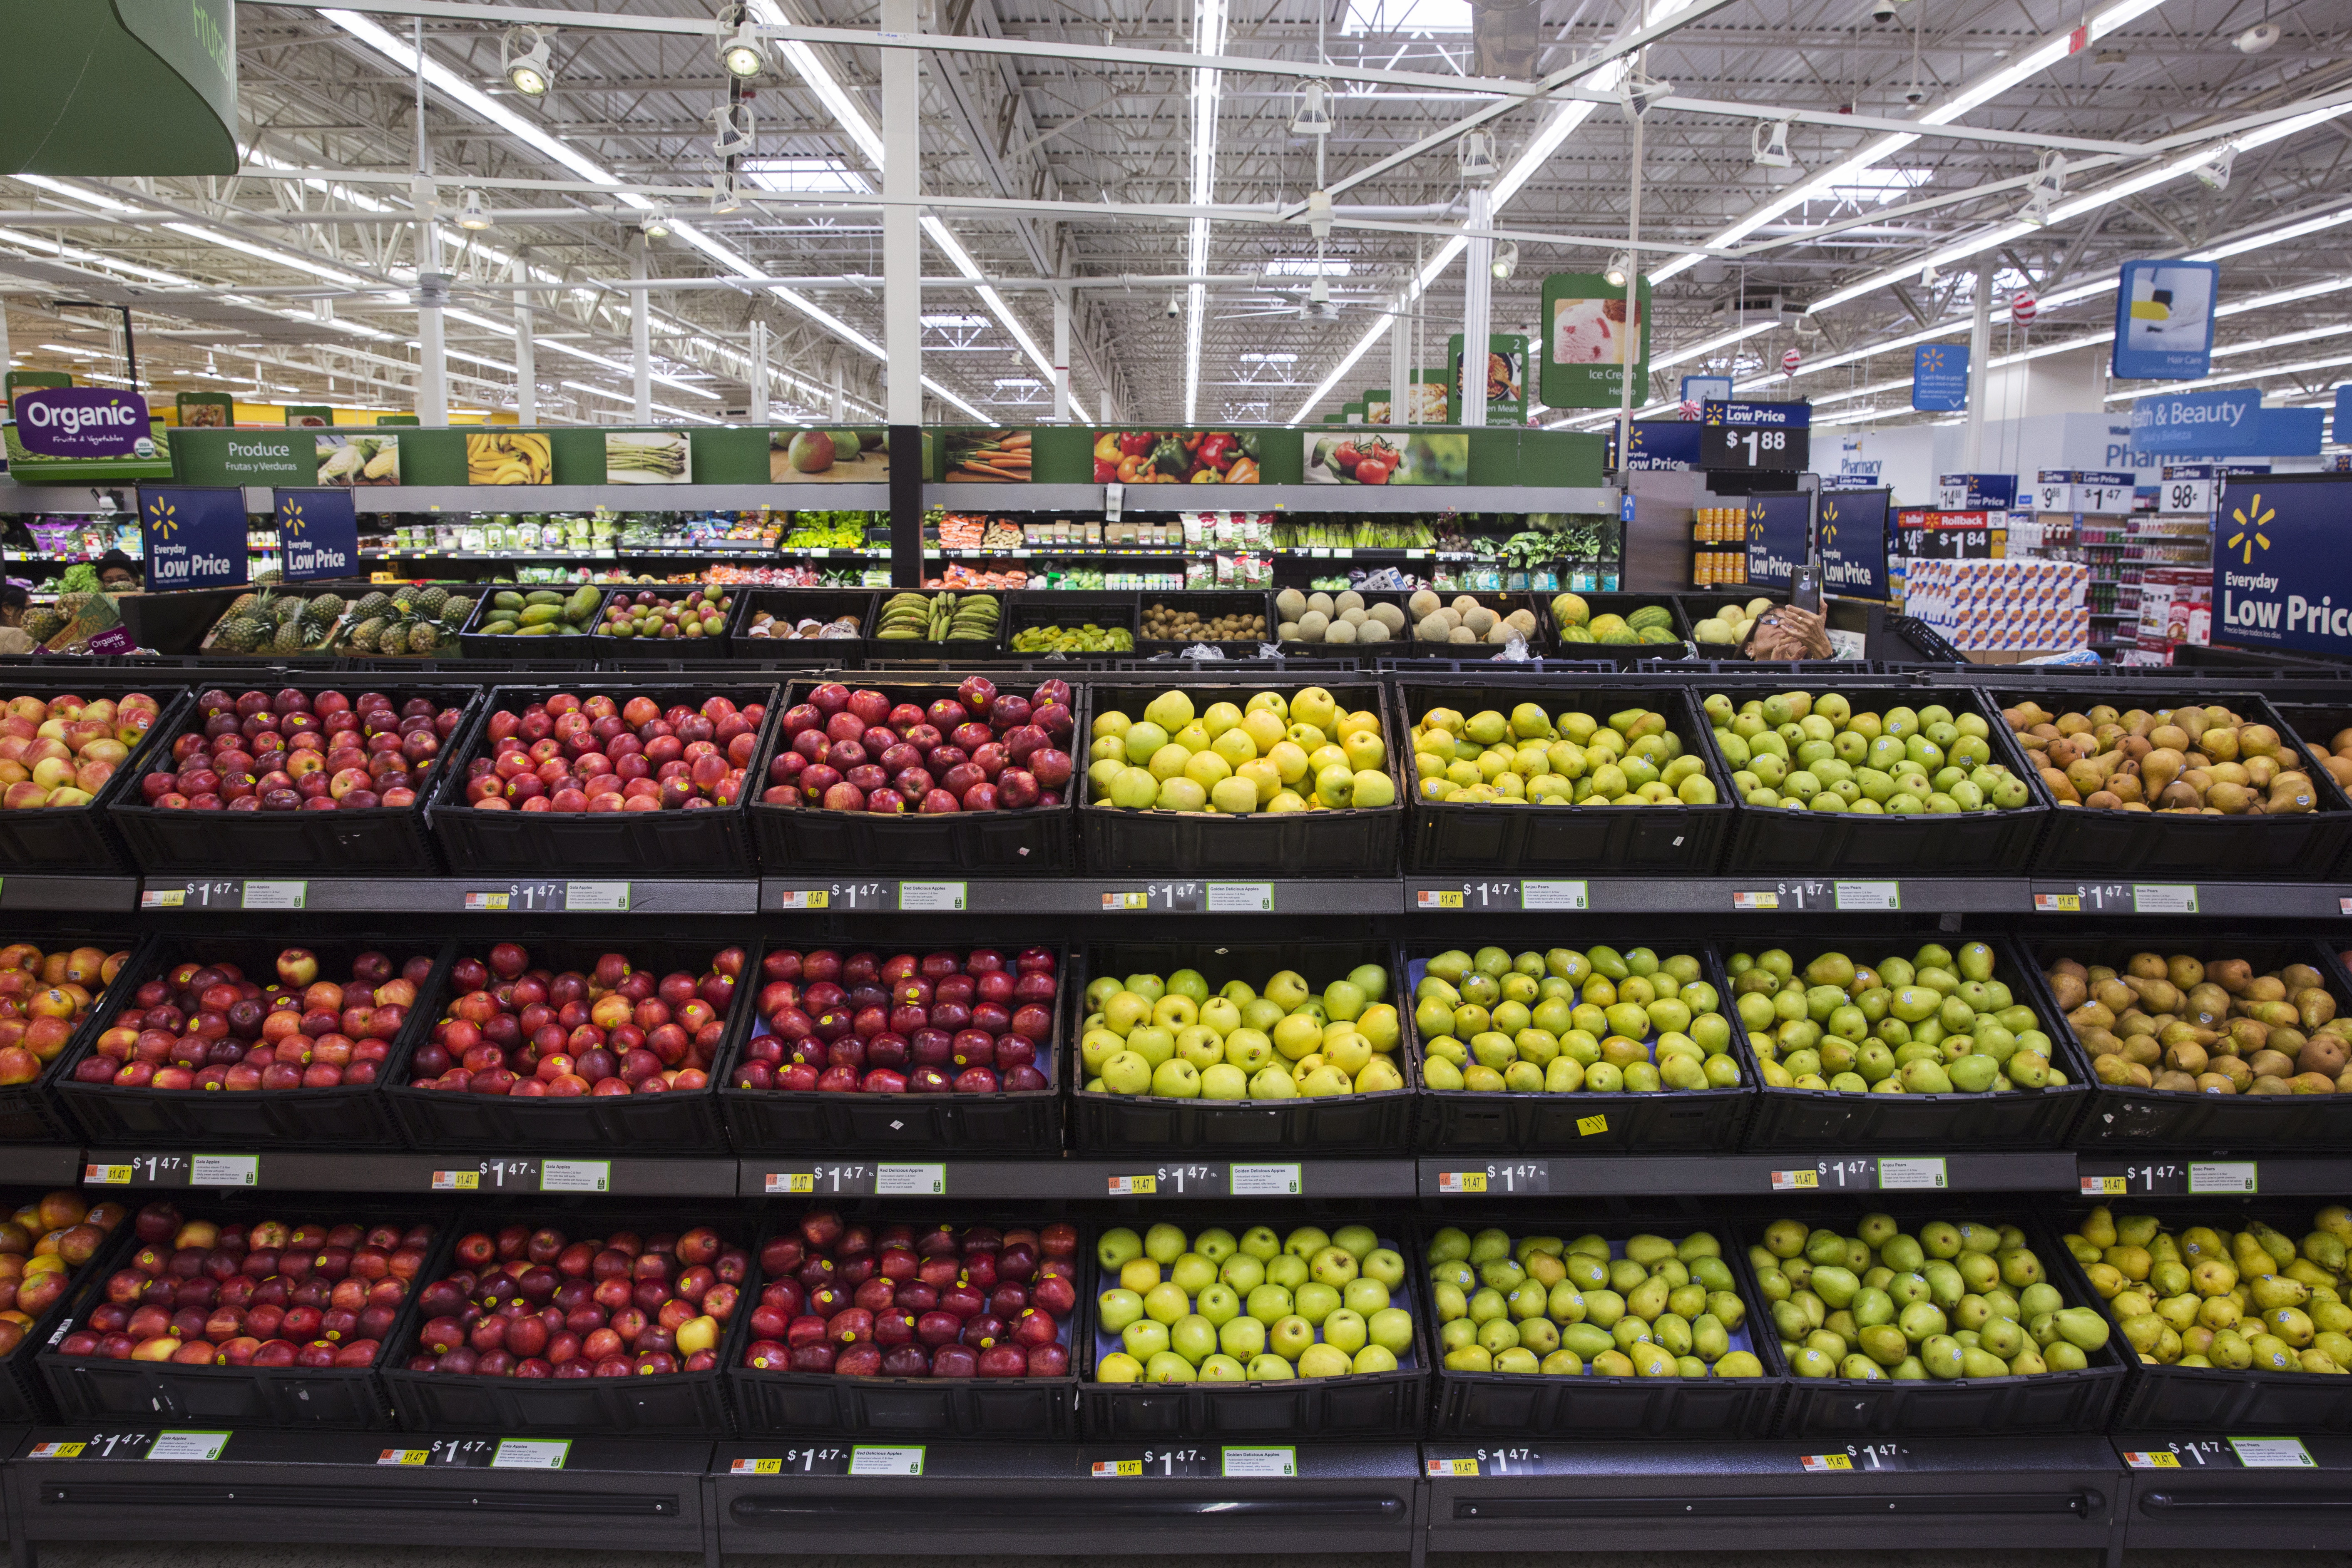 The fresh produce is displayed at a Walmart store in Secaucus, New Jersey